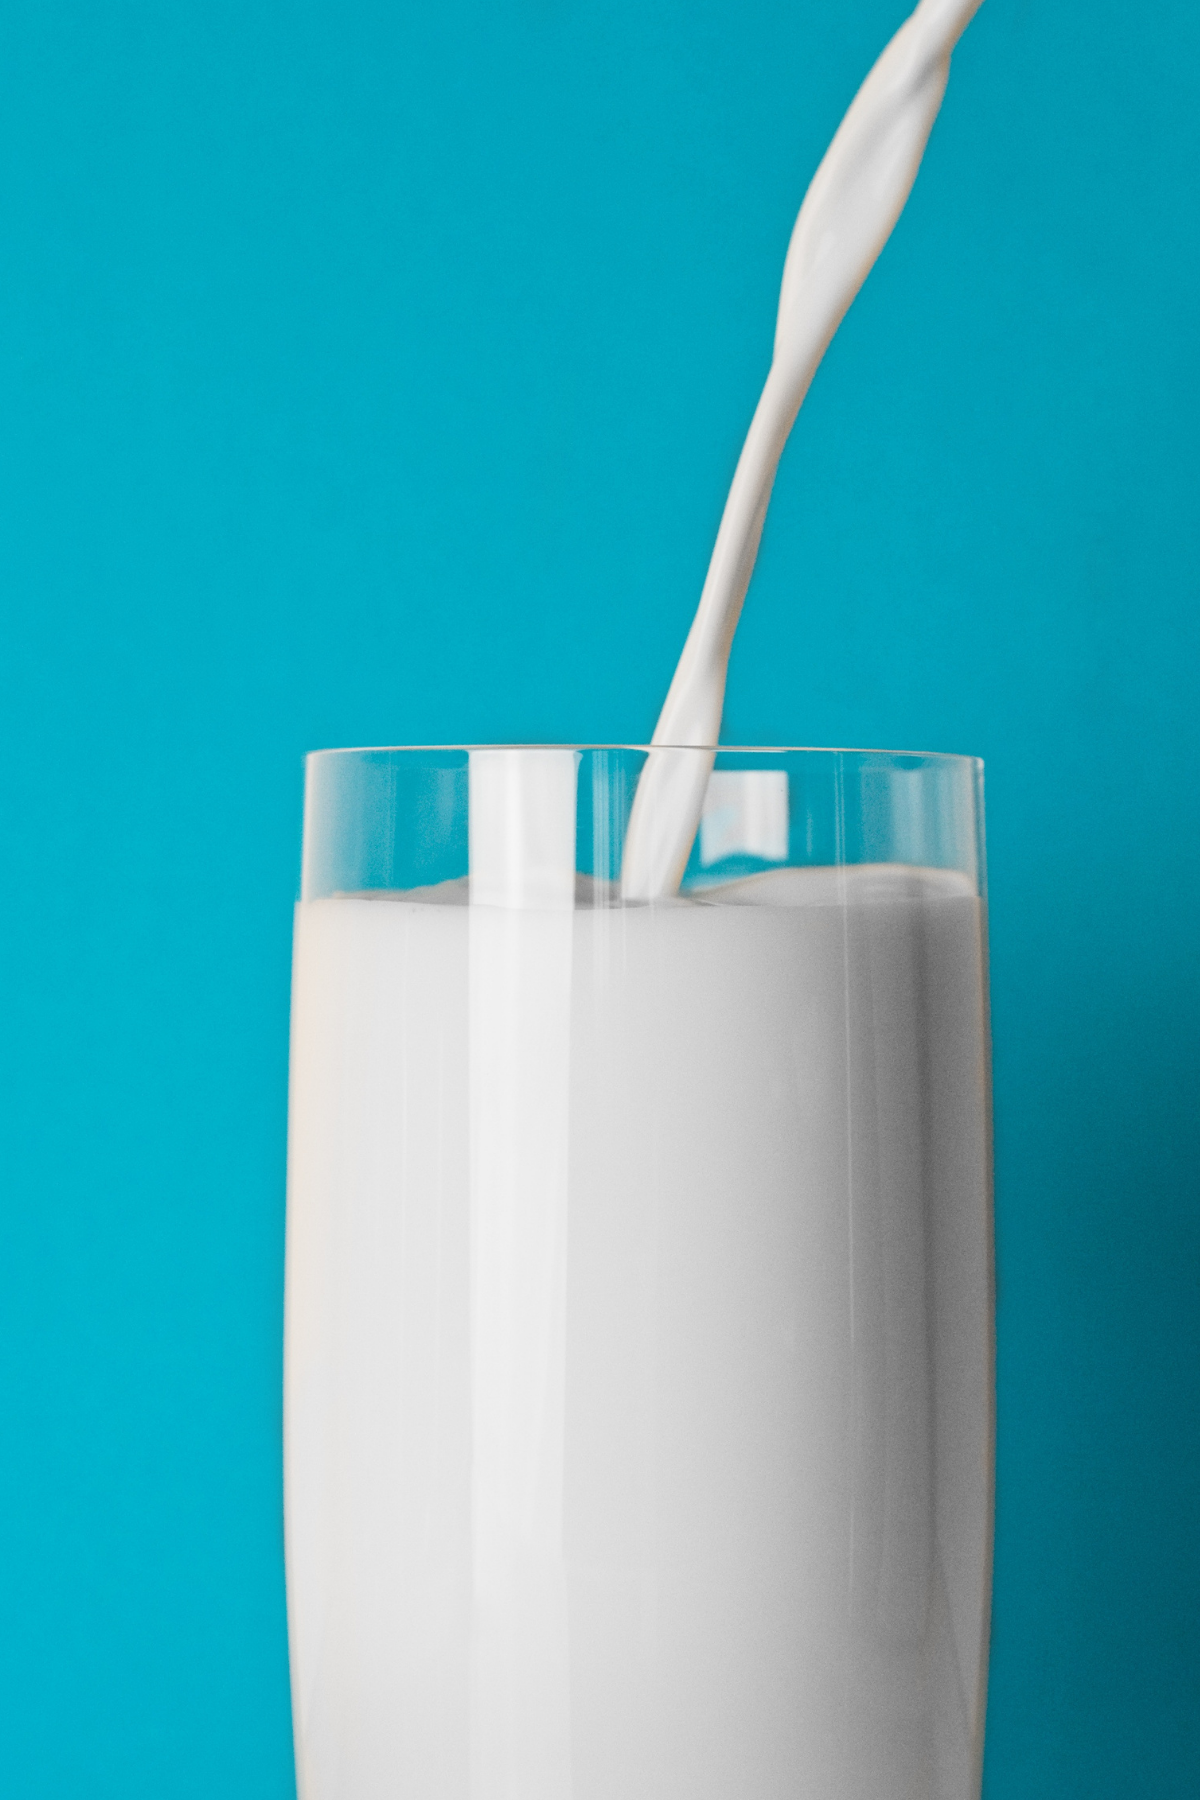 Glass of milk in front of a blue background.